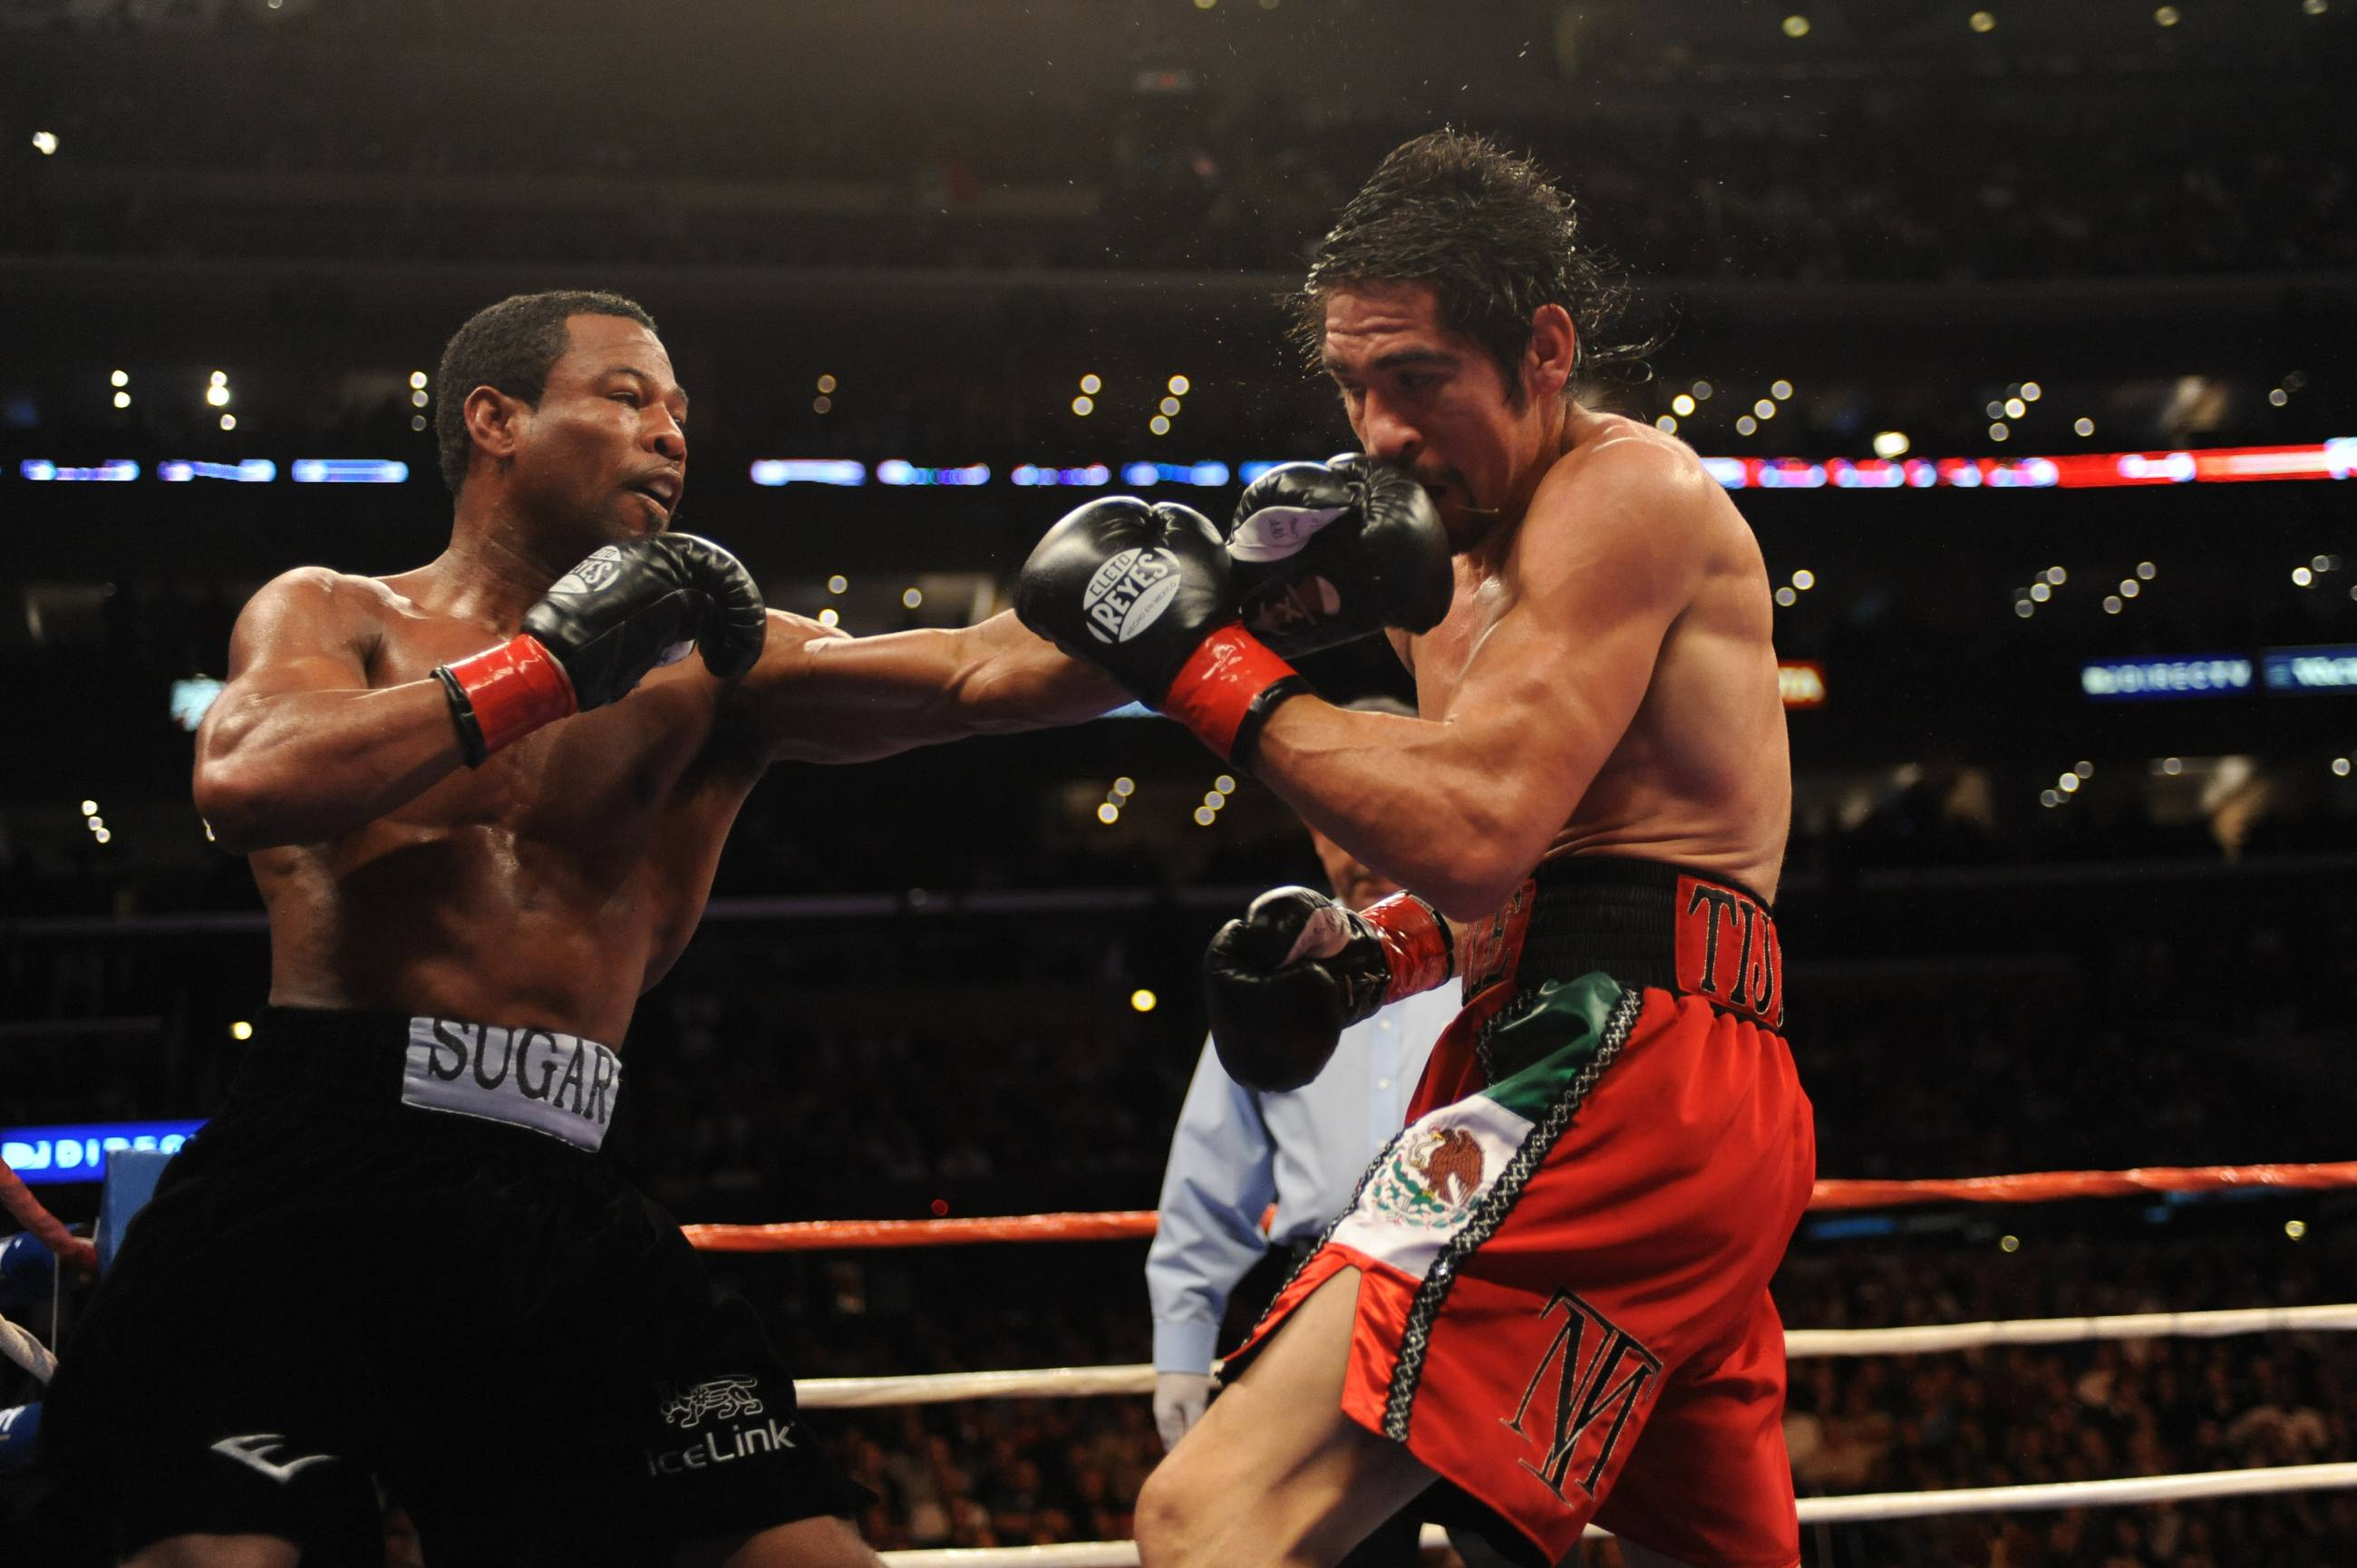 """Sugar"" Shane Mosely lands a punch on Antonio Margarito at STAPLES Center"